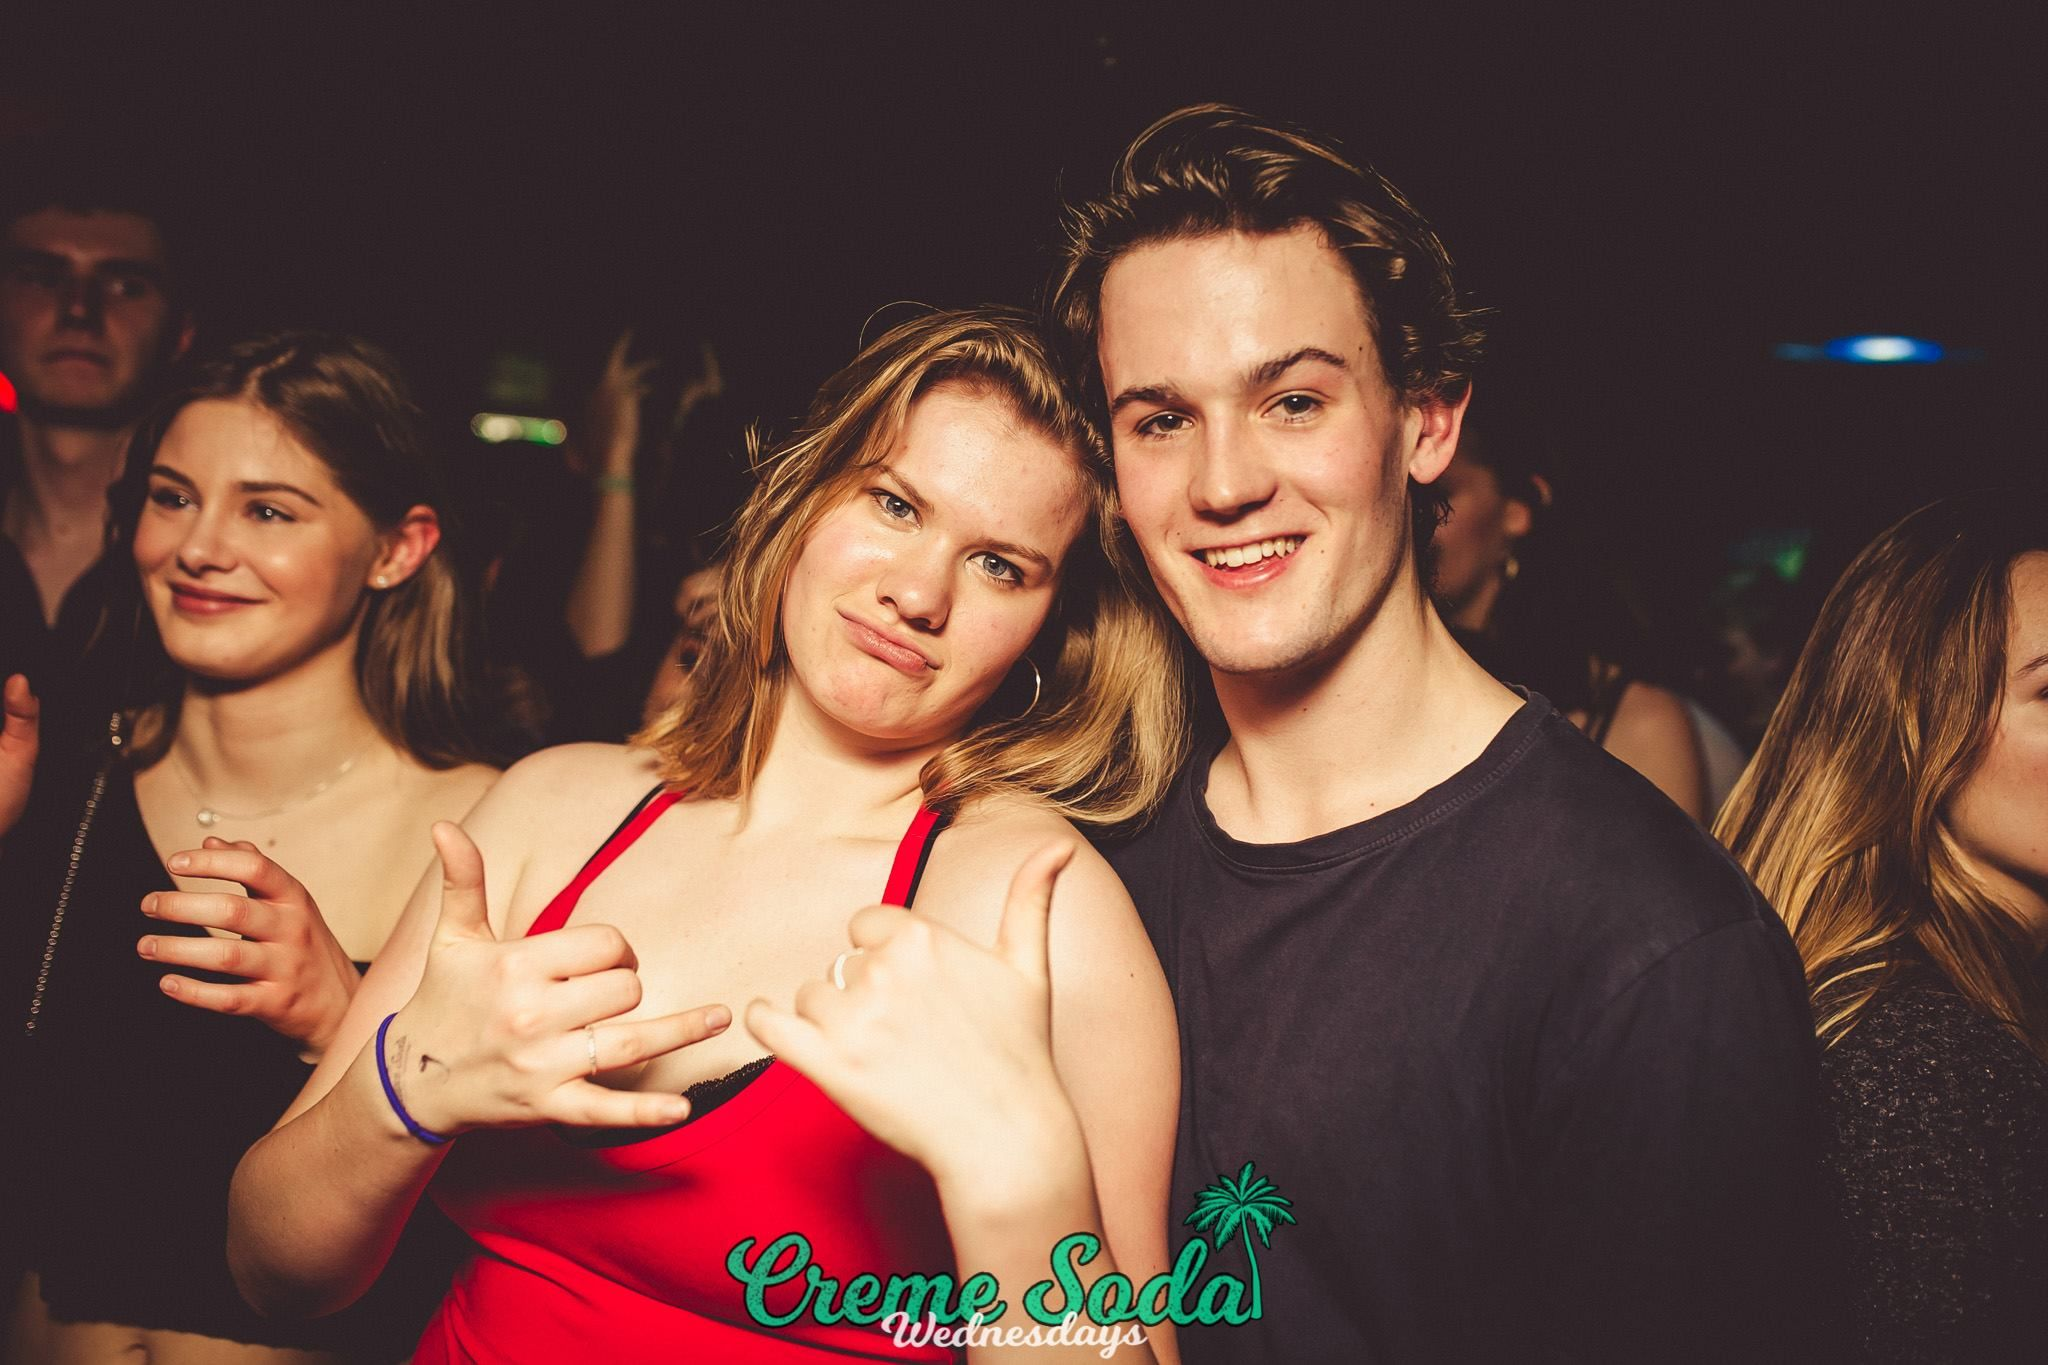 Image may contain: Night Life, Night Club, Club, Smile, Portrait, Face, Person, People, Human